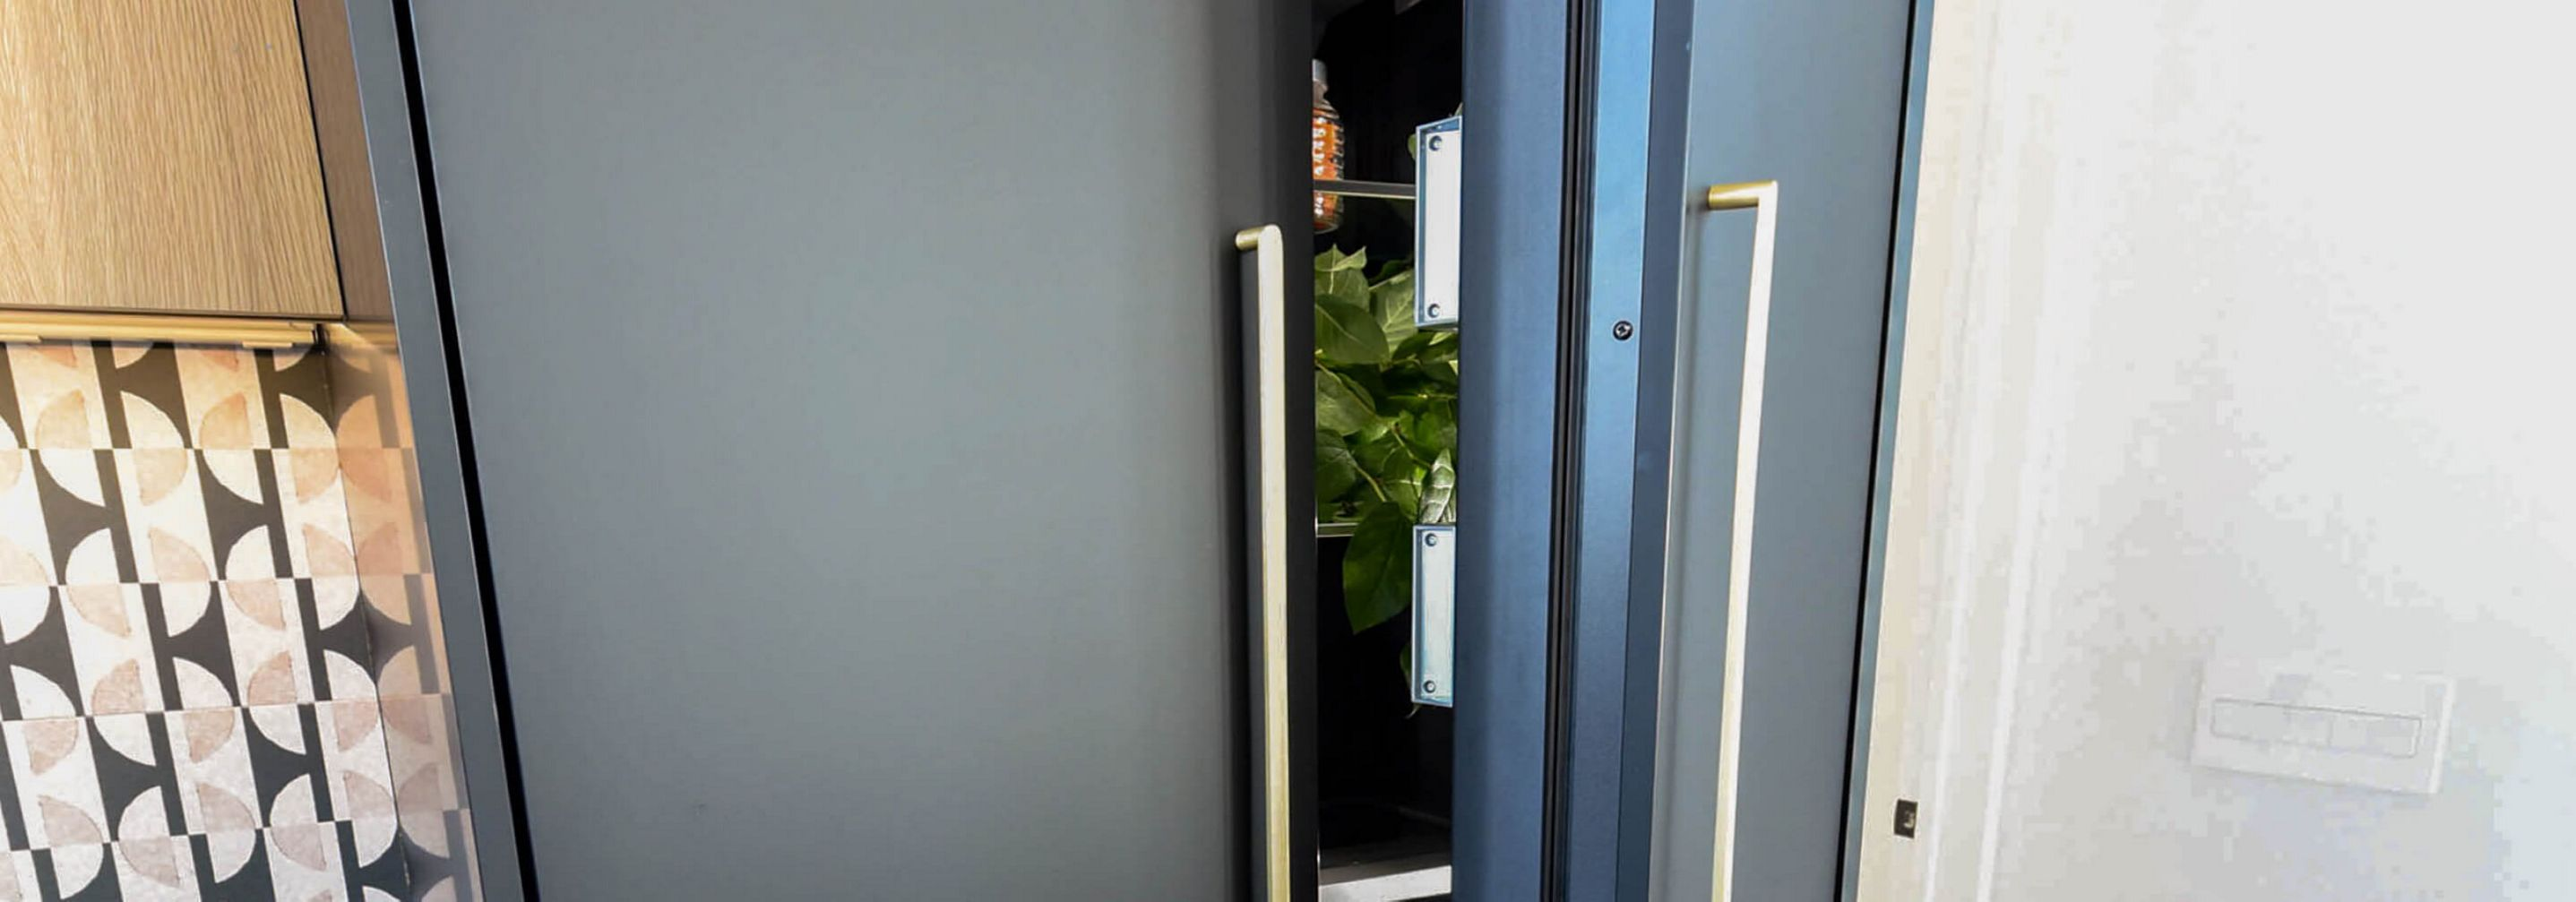 Doors of a French Door Built-In Refrigerator equipped with custom panels.